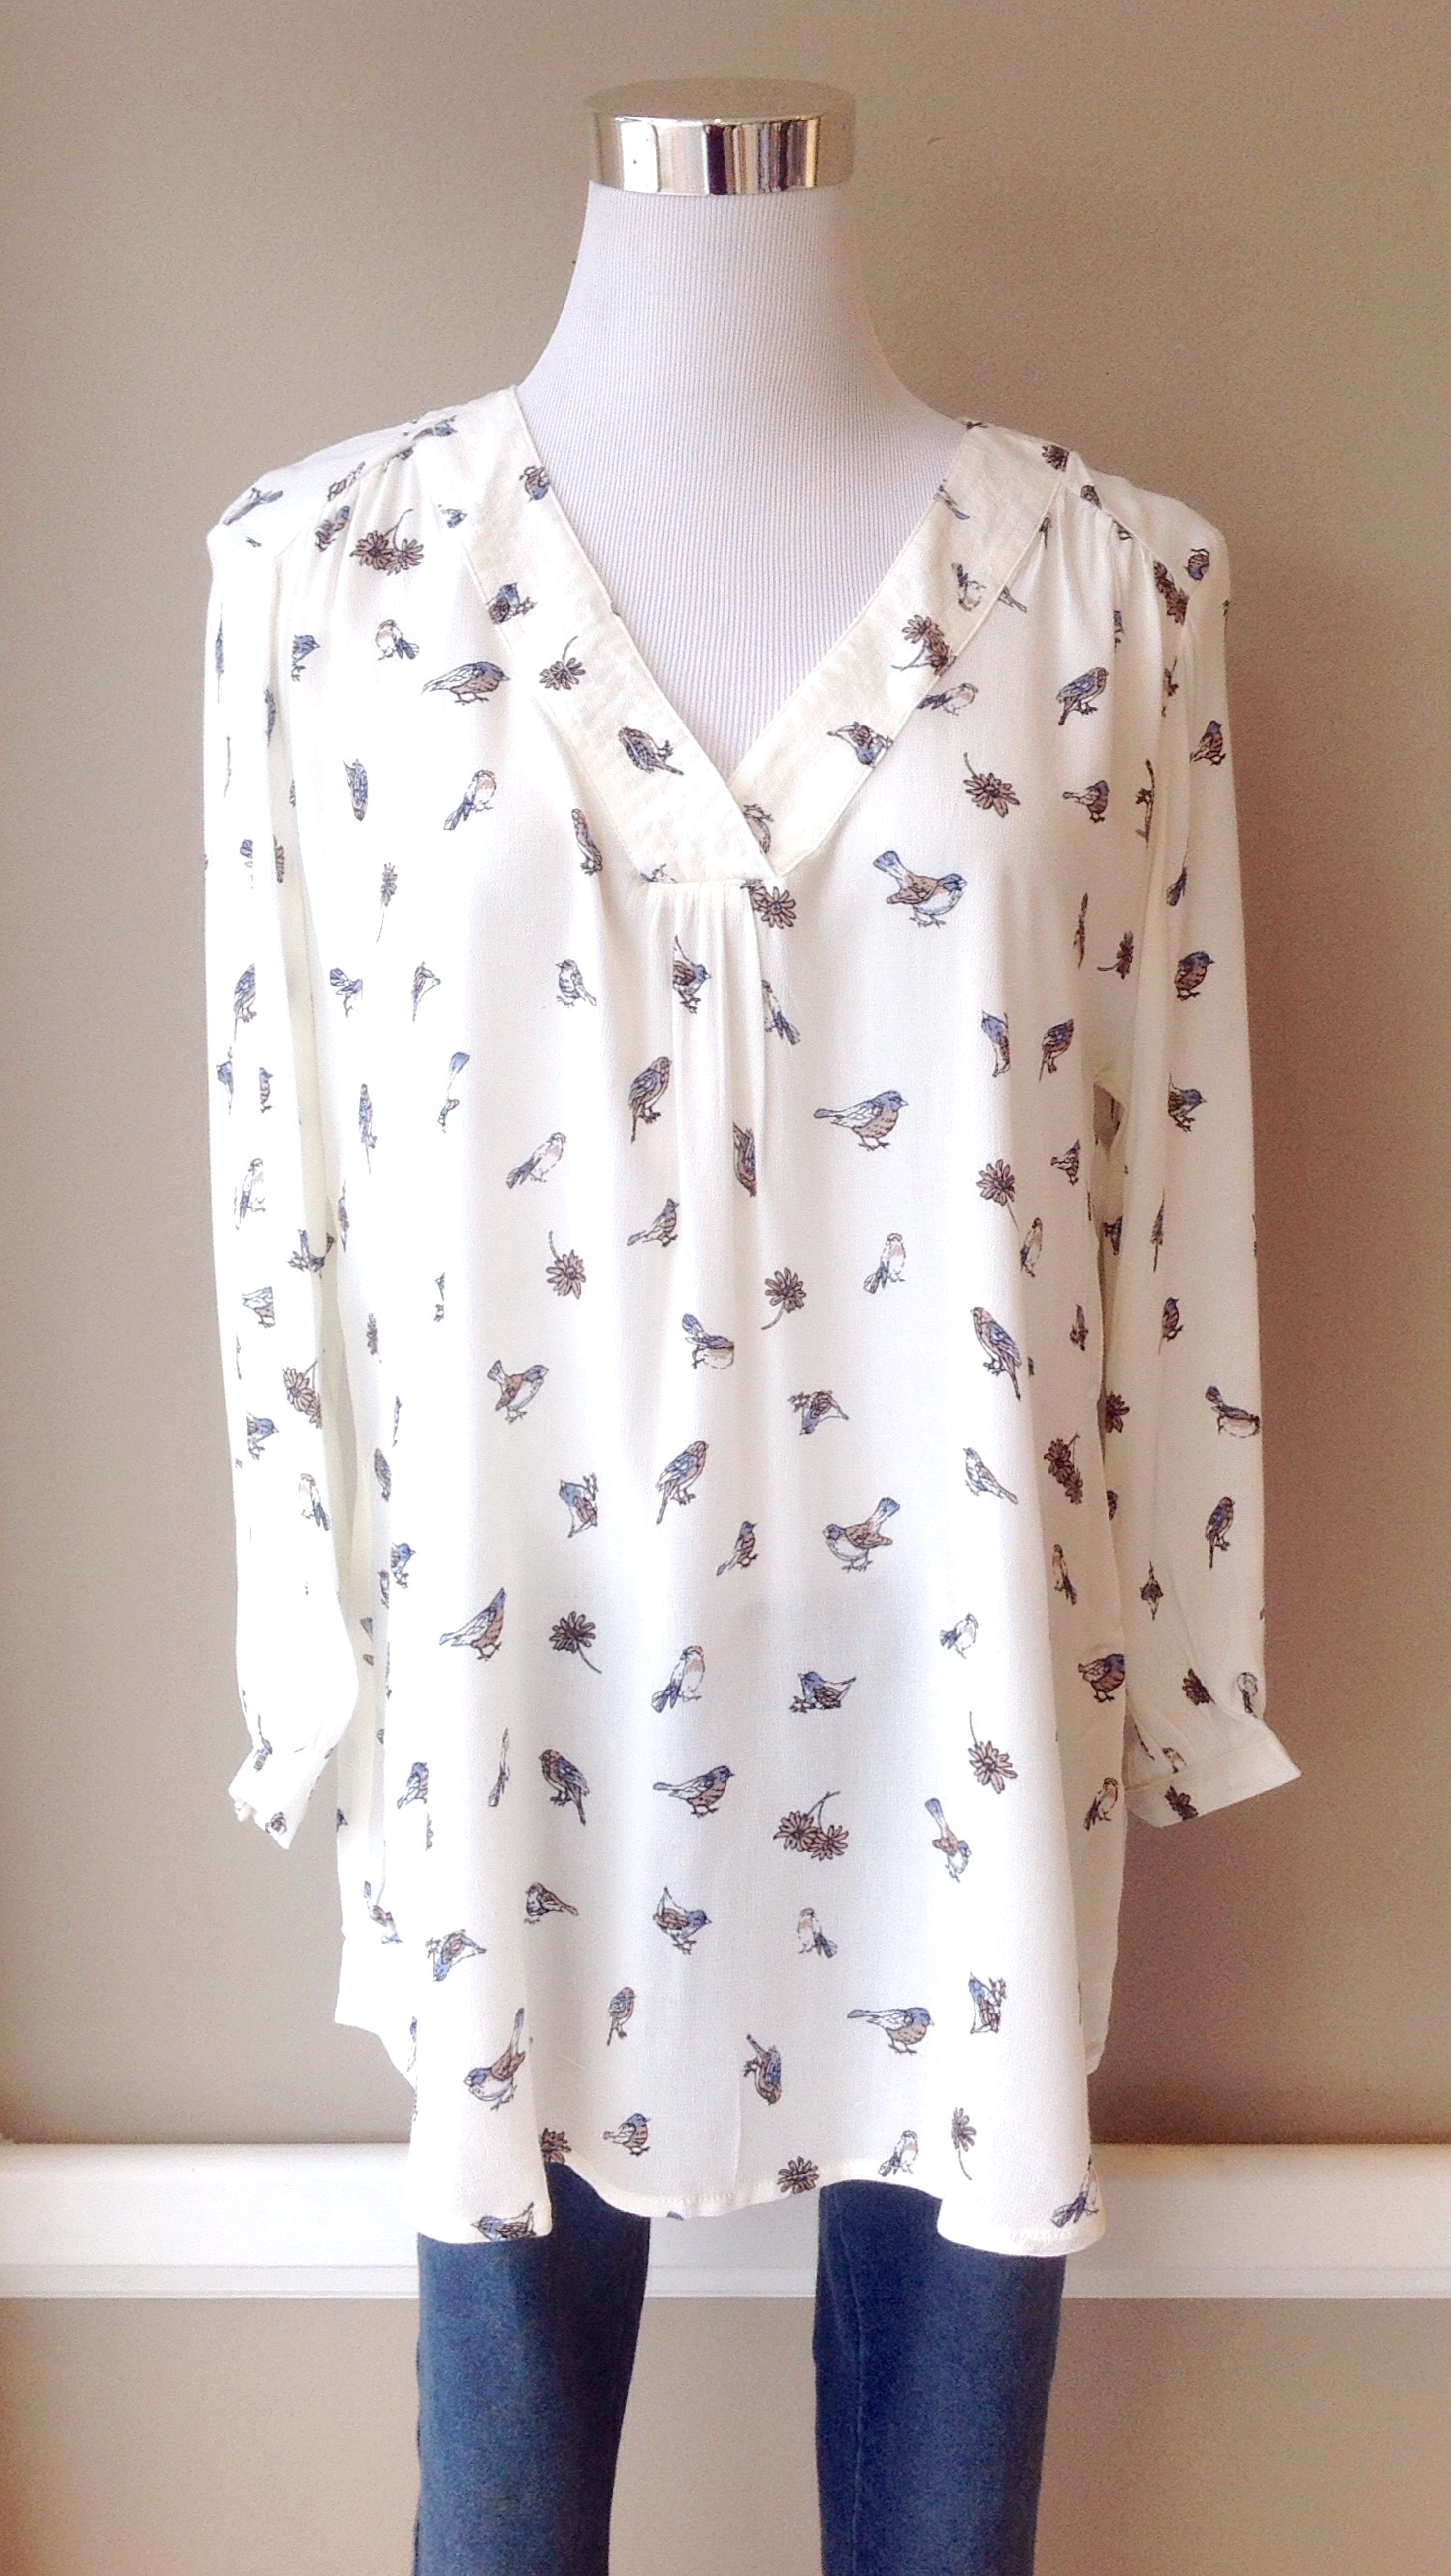 Woven bird print v-neck blouse in ivory